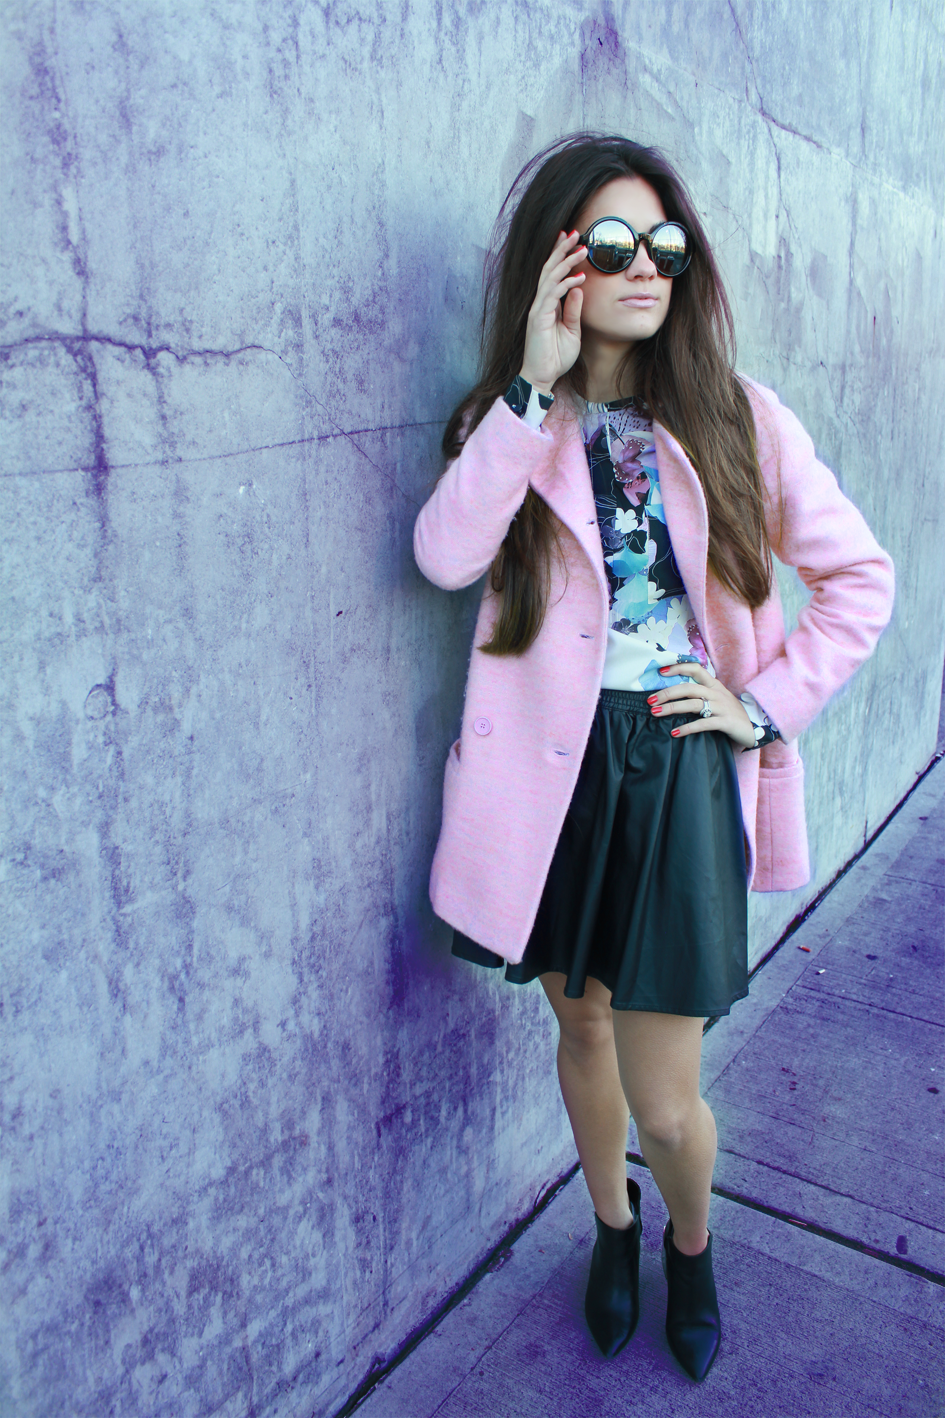 Pink Zara Pea Coat, Phillip Lim 3.1 Blouse, Lowrys Farm Leather Skirt, and Zara Boots